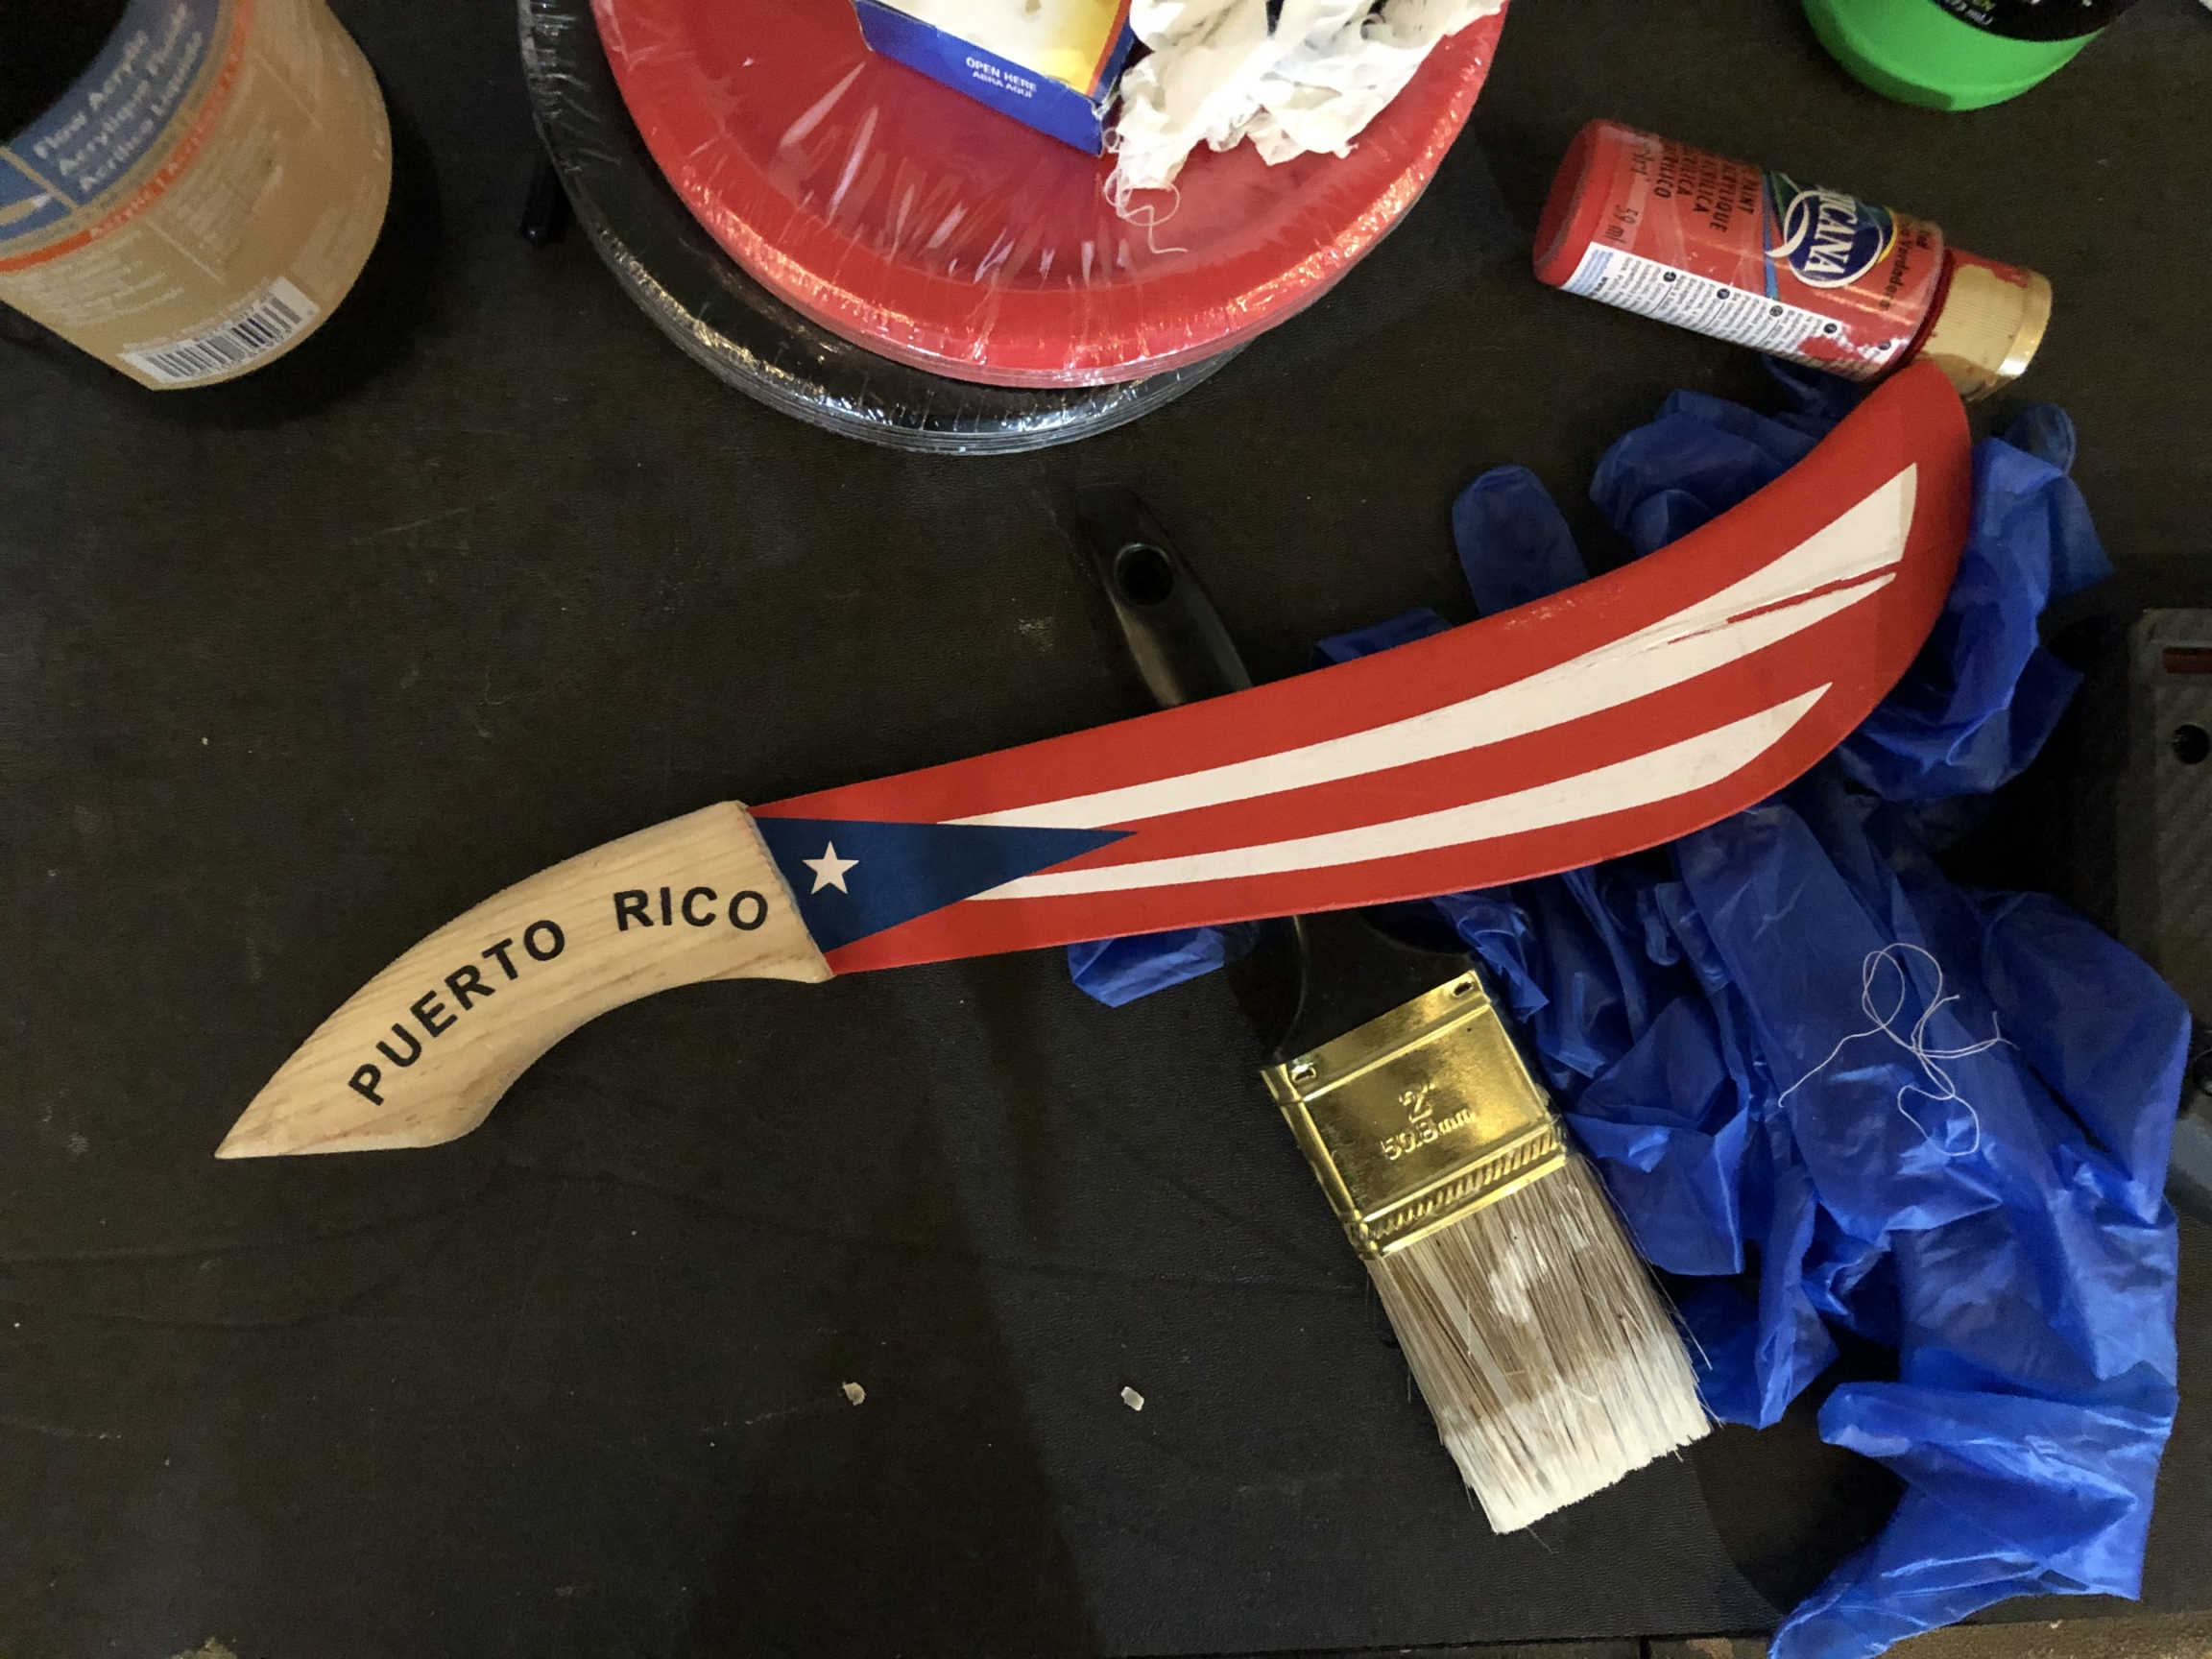 A prop wooden machete painted red, white and blue to match the Puerto Rican flag.